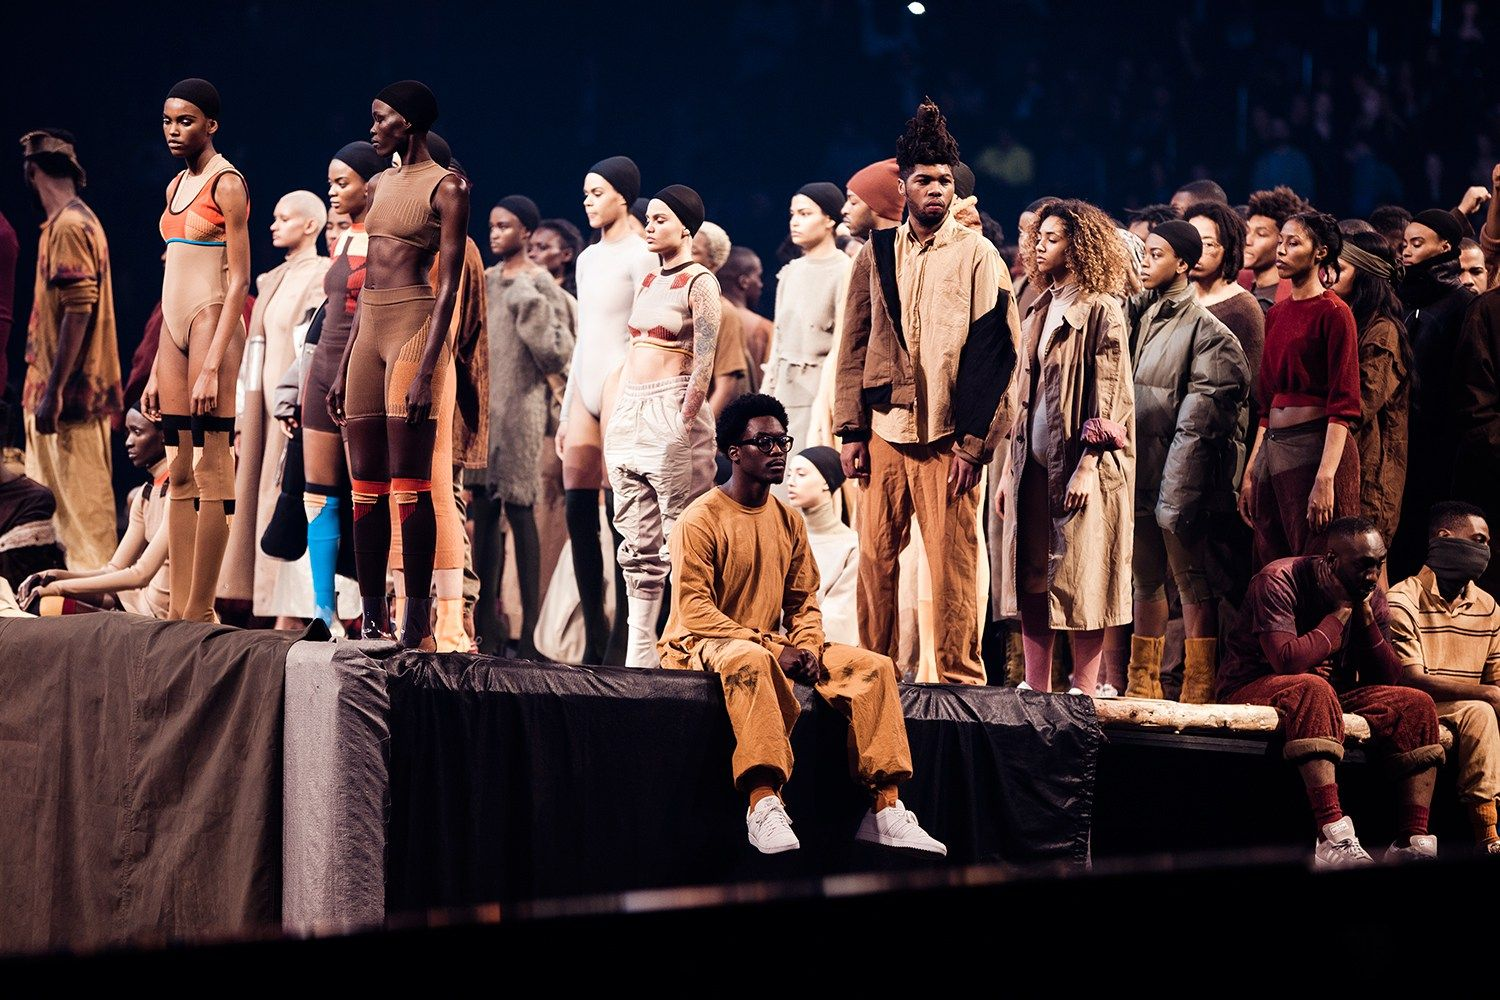 Kanye West Unveils Yeezy Season 3 At Madison Square Garden Yeezy Season Yeezy Season 3 Yeezy Season 2